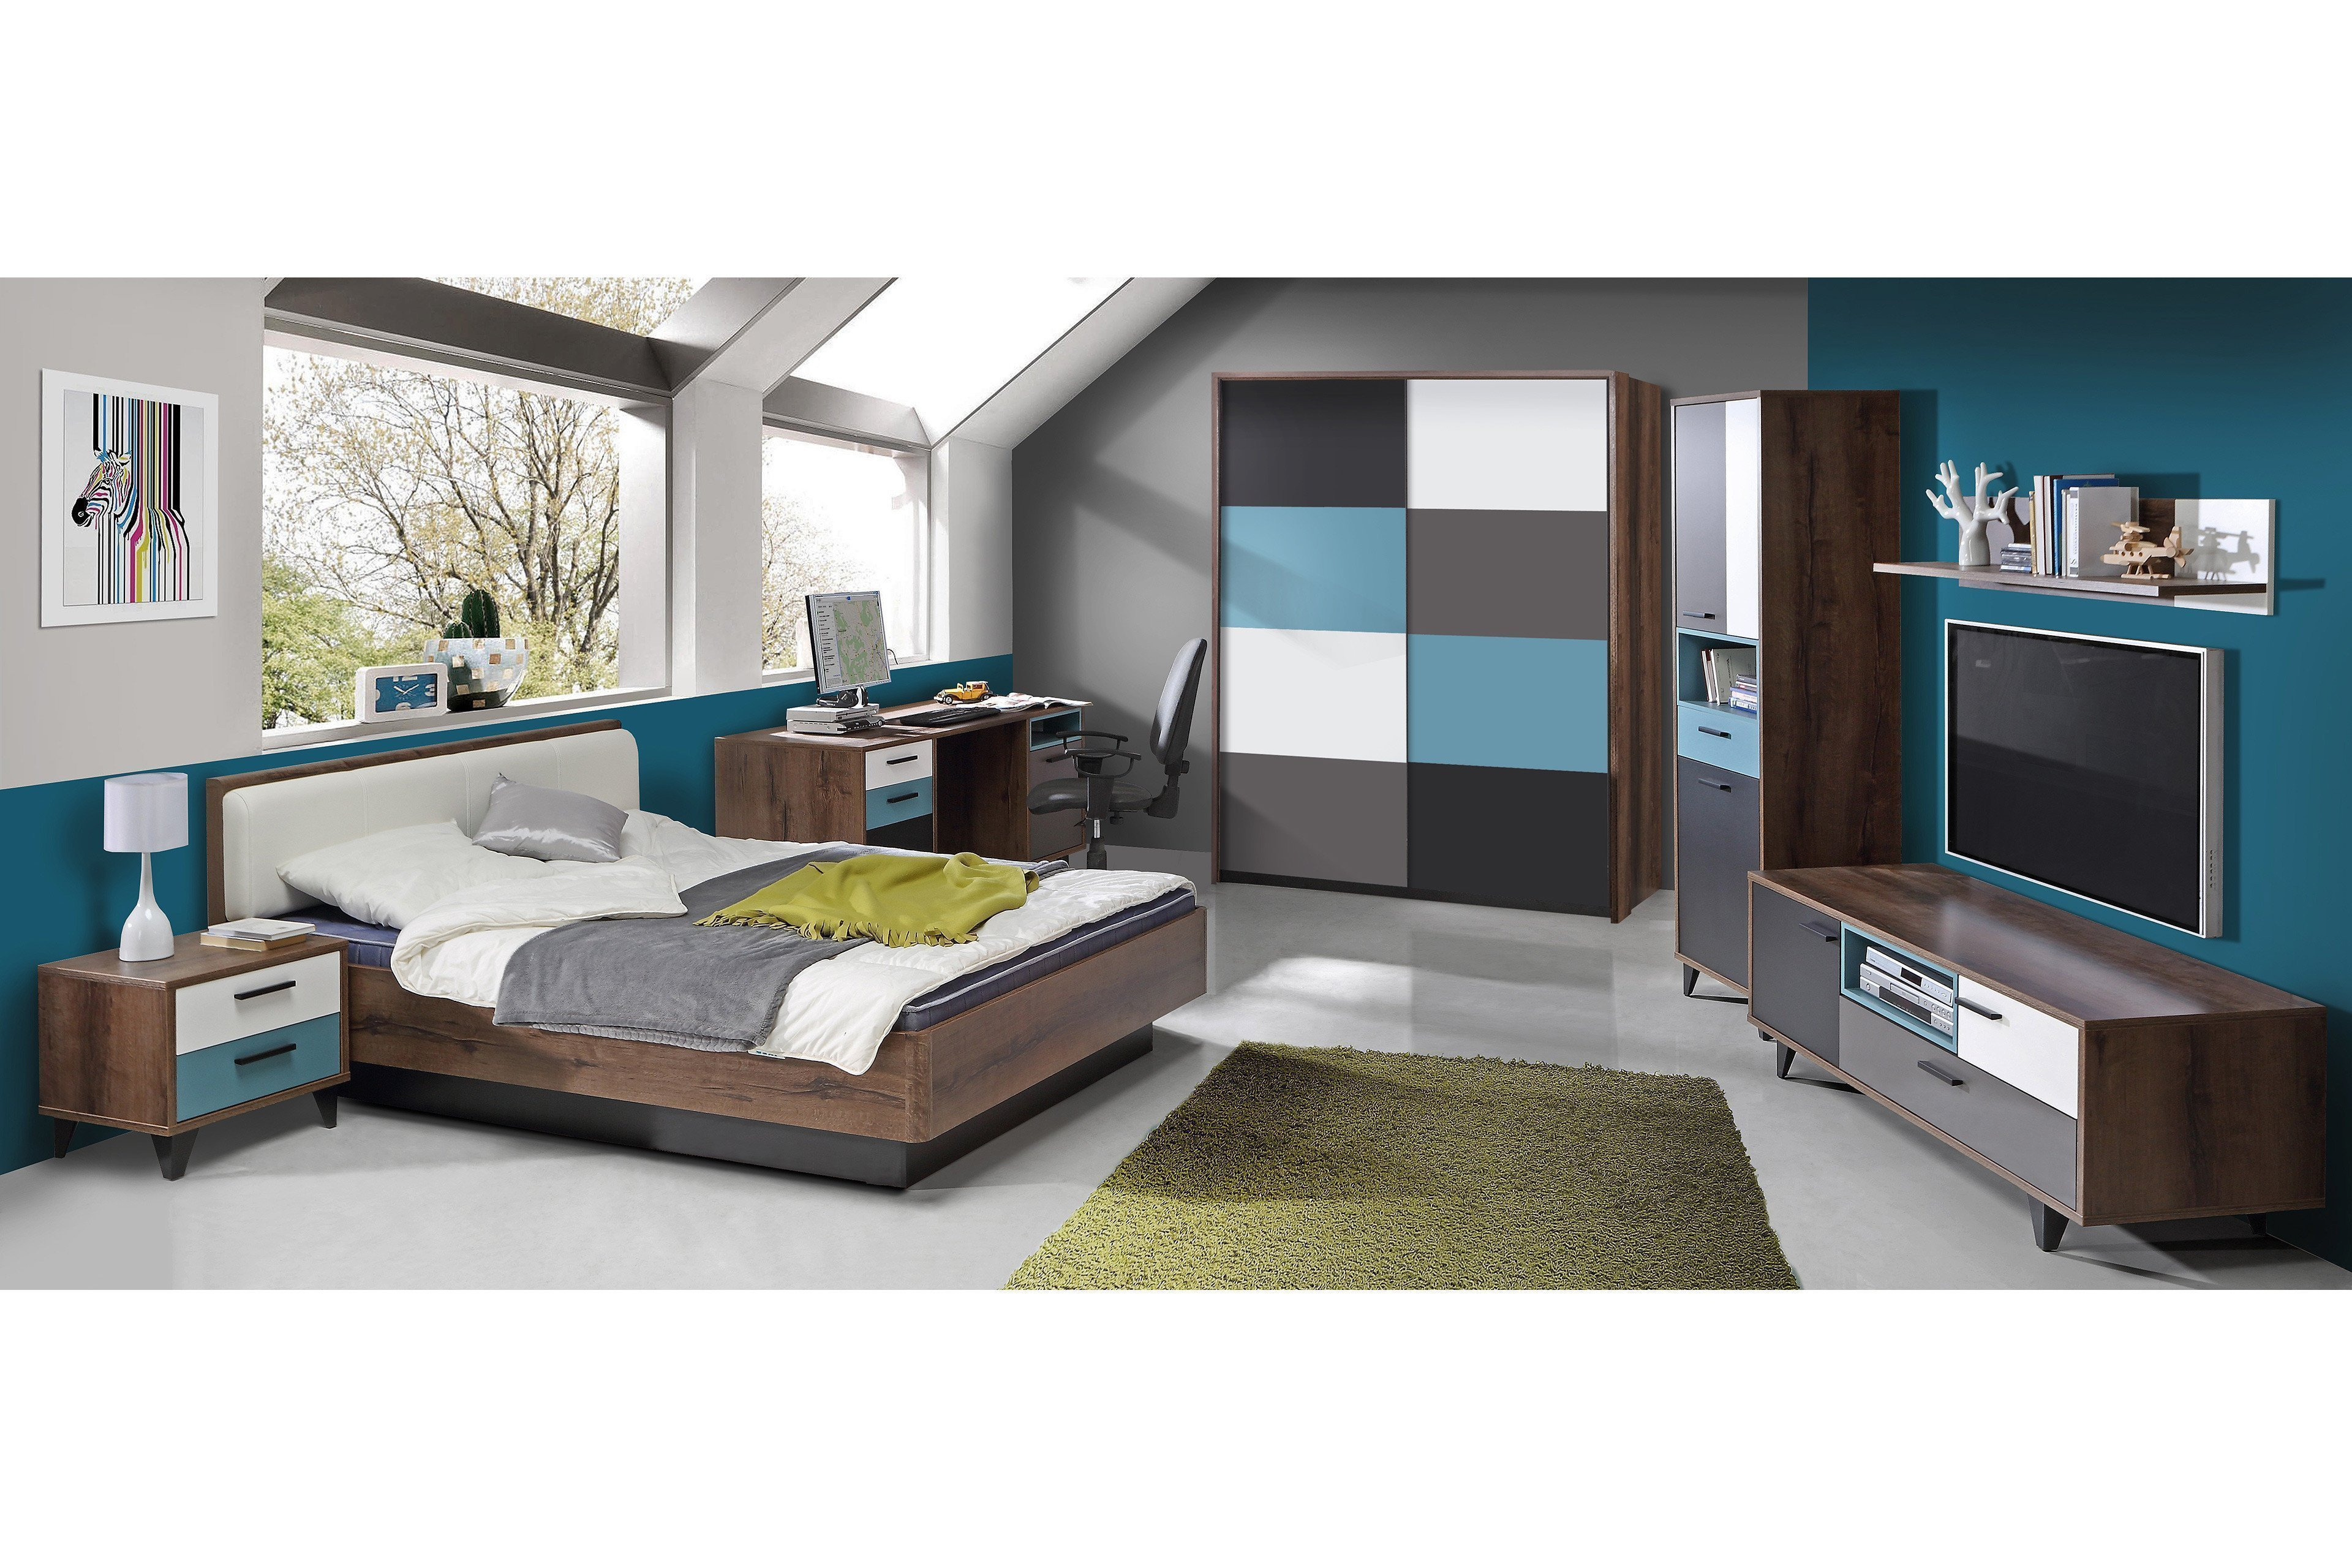 raven jugendzimmer 2 teilig von forte m bel letz ihr online shop. Black Bedroom Furniture Sets. Home Design Ideas